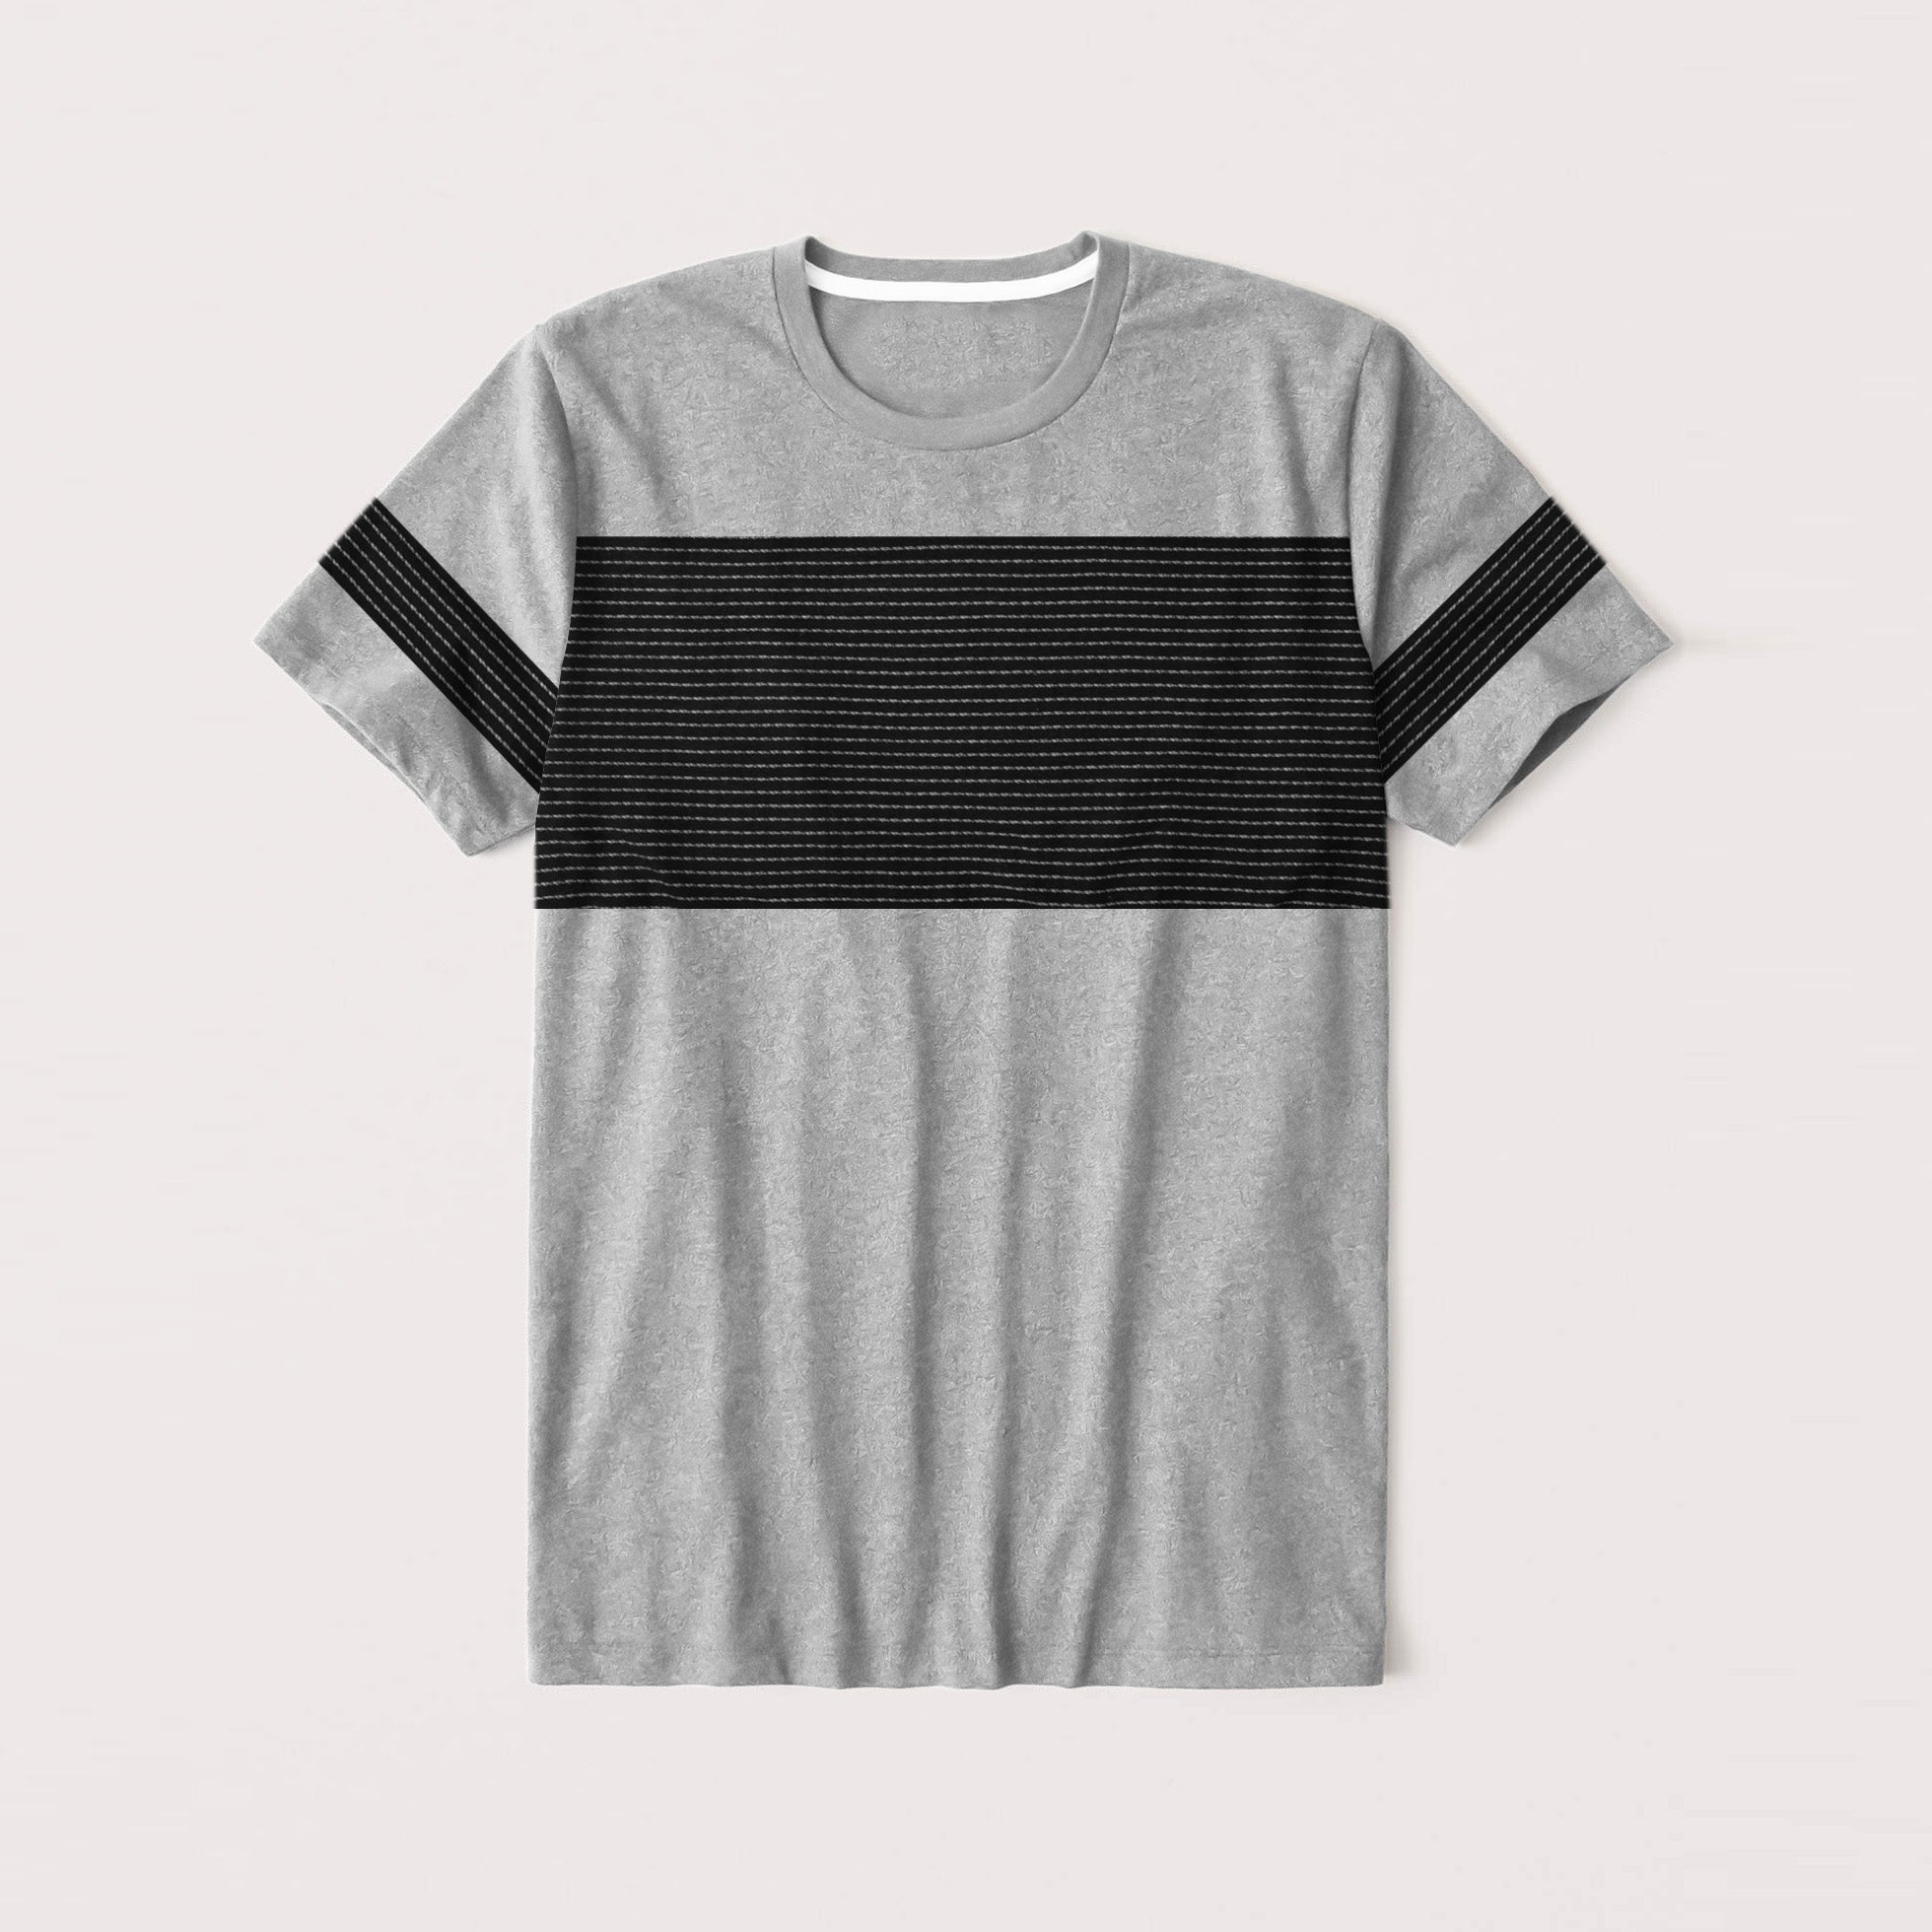 NK Summer Crew Neck Tee Shirt For Men-Grey Melange With  Black Panel-NA11681